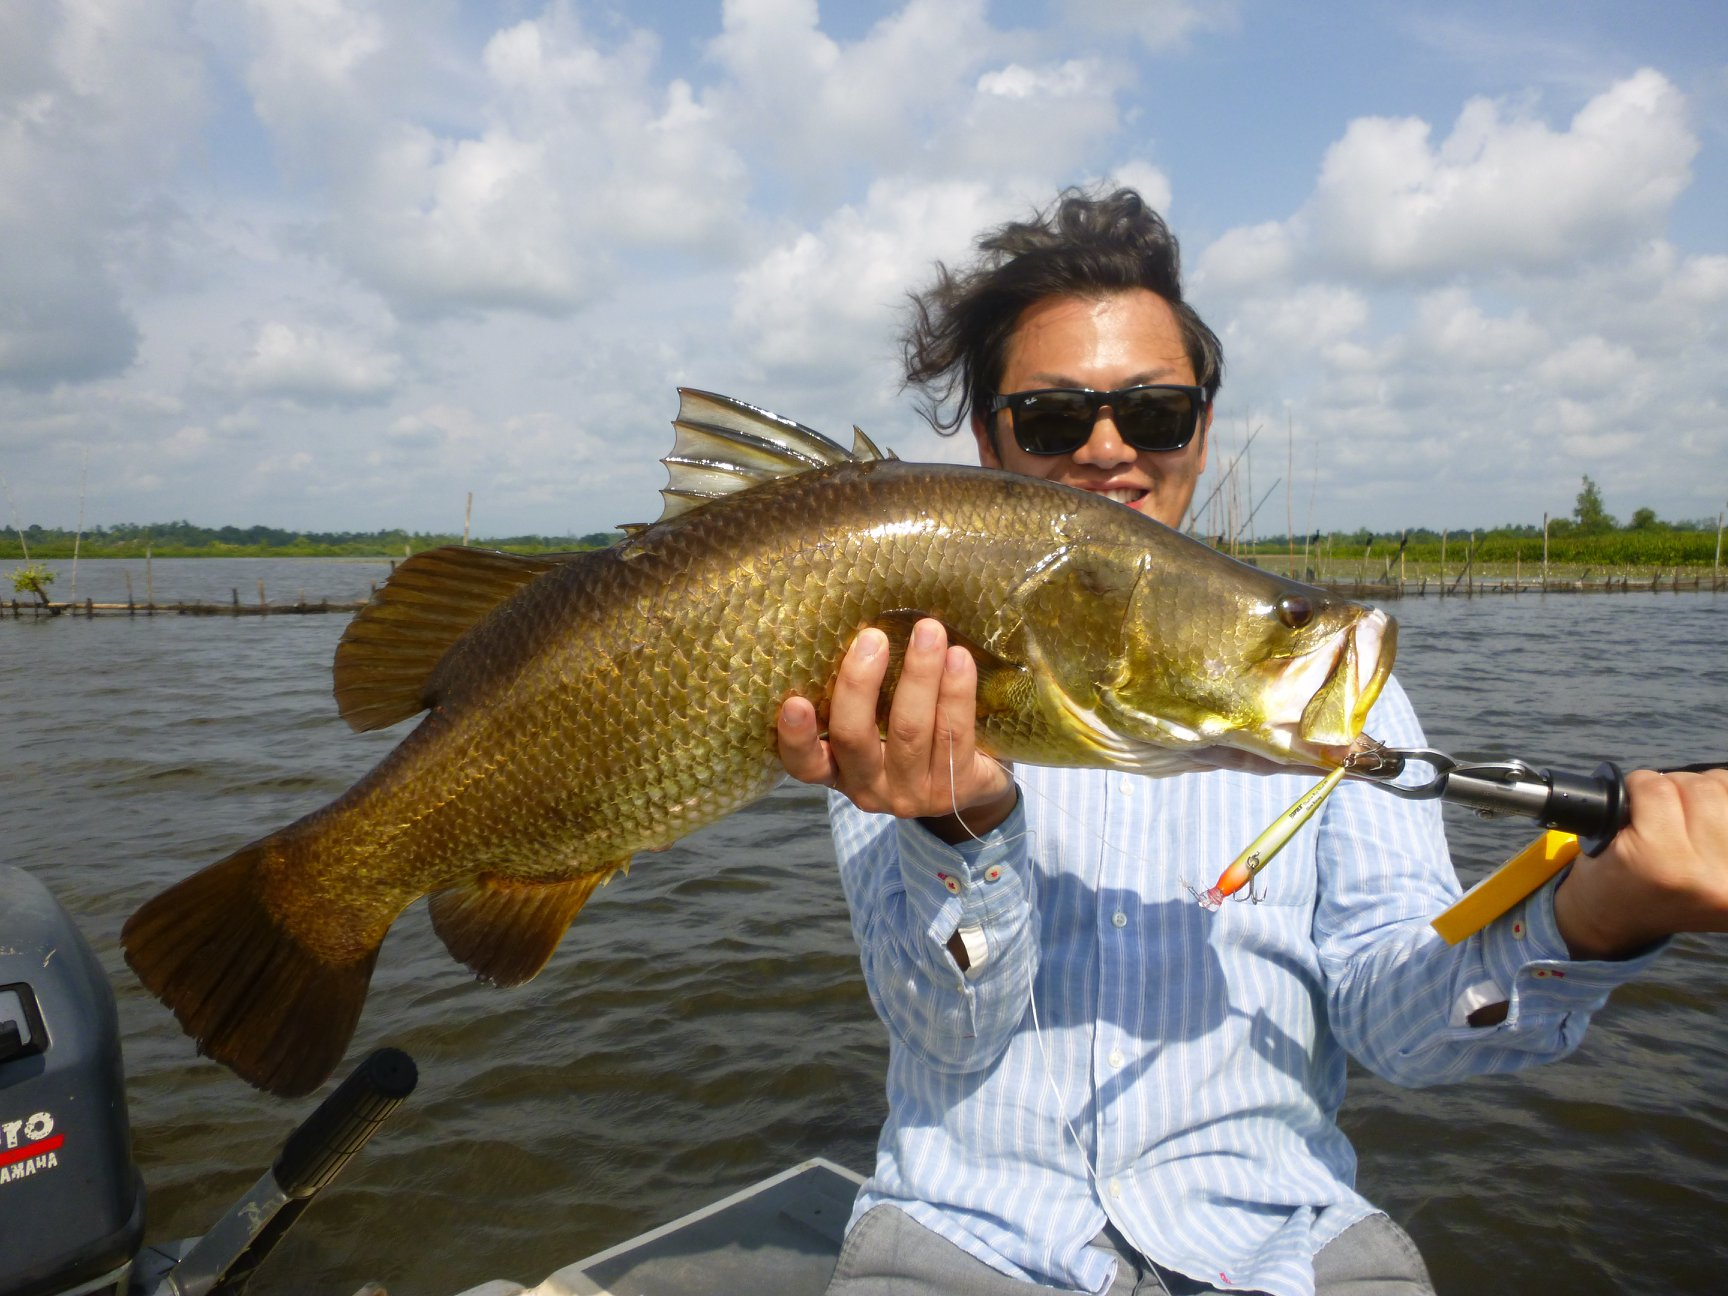 Barramundi fishing Rapala VMC Hook Bolgoda Lake Sportfishing Lanka.jpg